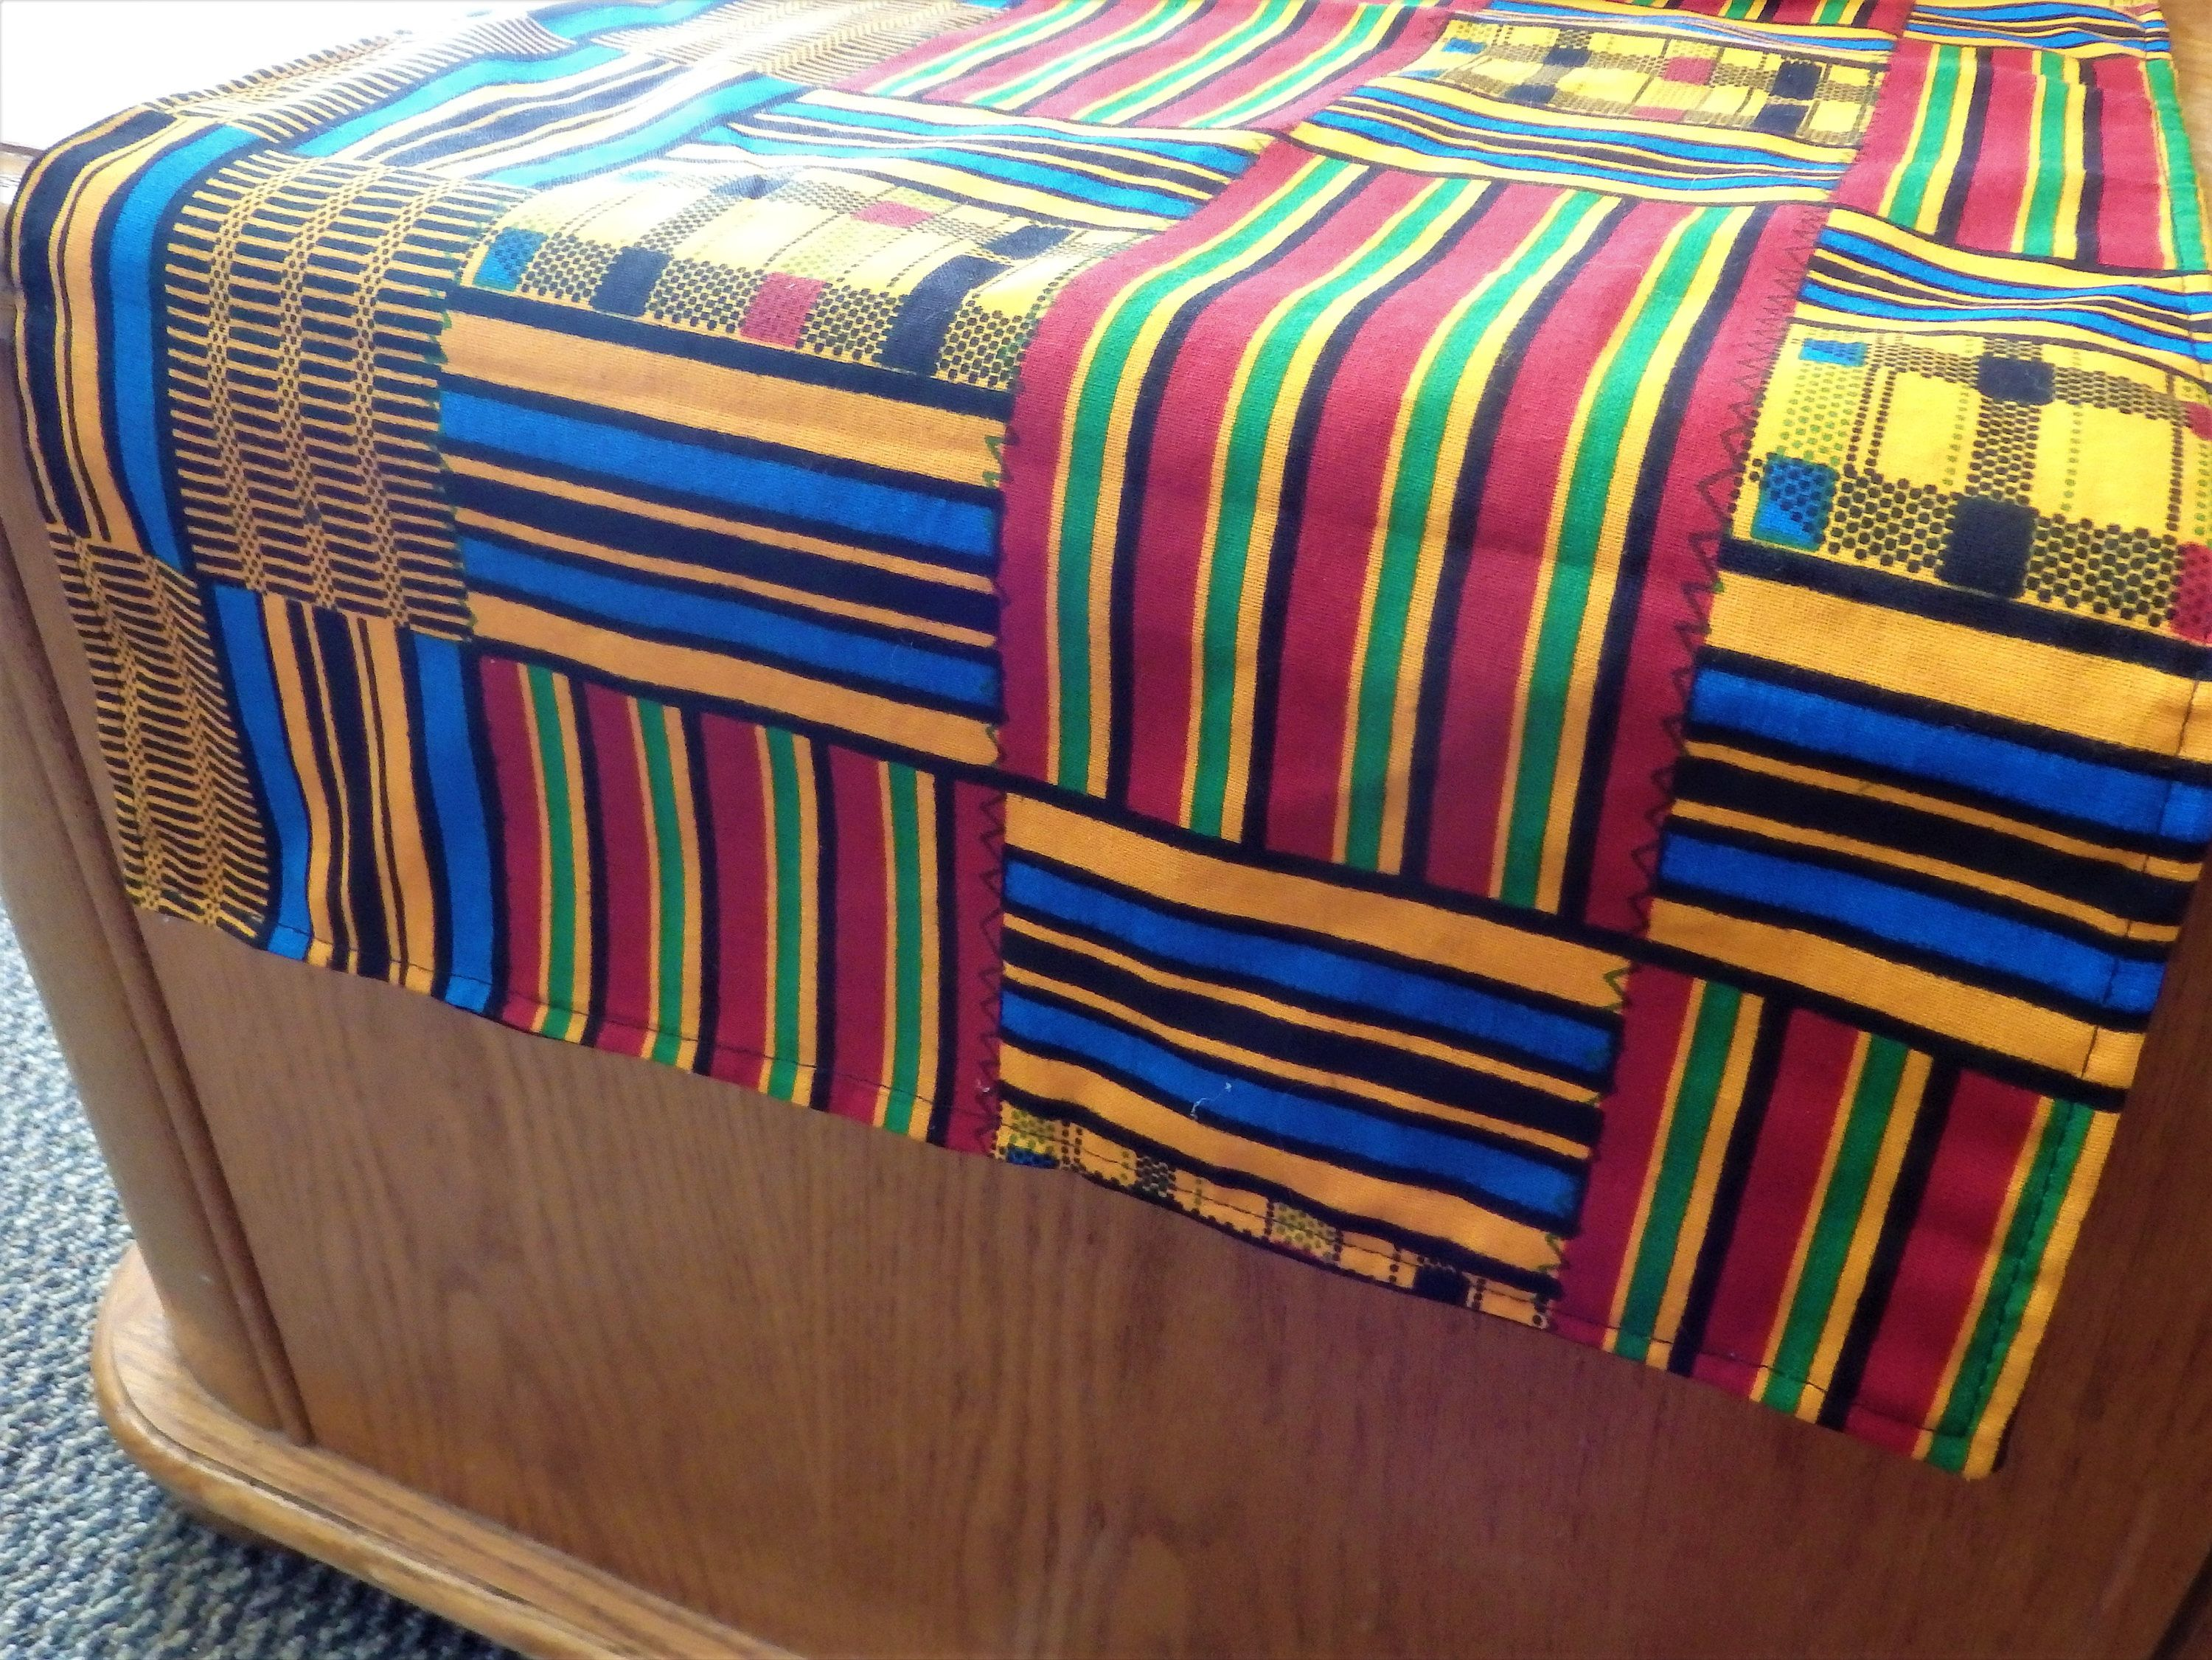 Kente Print Table Runner, African Table Cloth, Or Matching Luncheon Napkins    Your Choice By BaysideBarb On Etsy